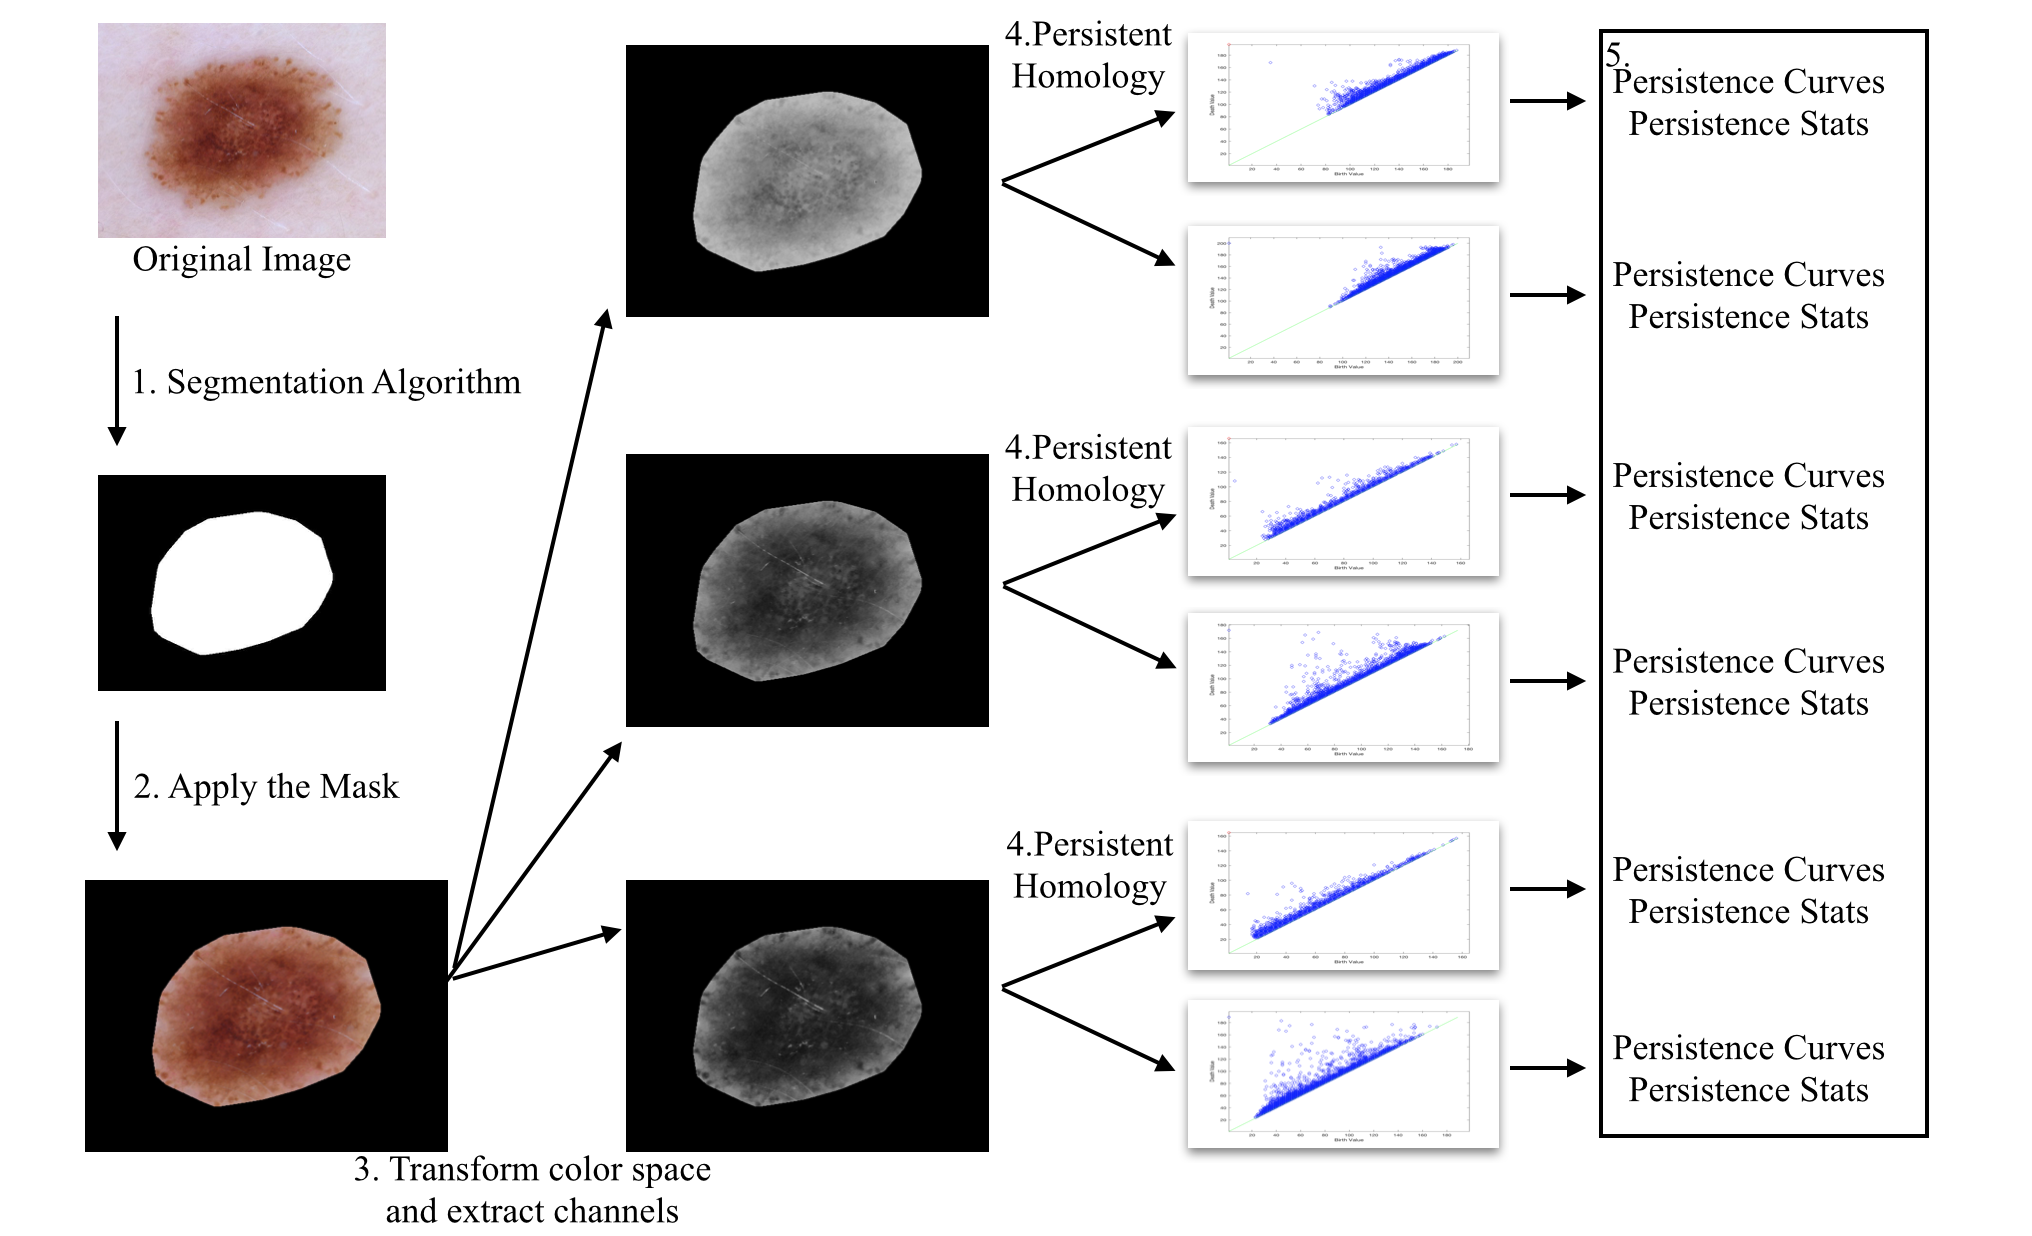 Schematic pipeline of our proposed features extractions. First, for each image, we apply the mask produced by the segmentation algorithm developed in Section